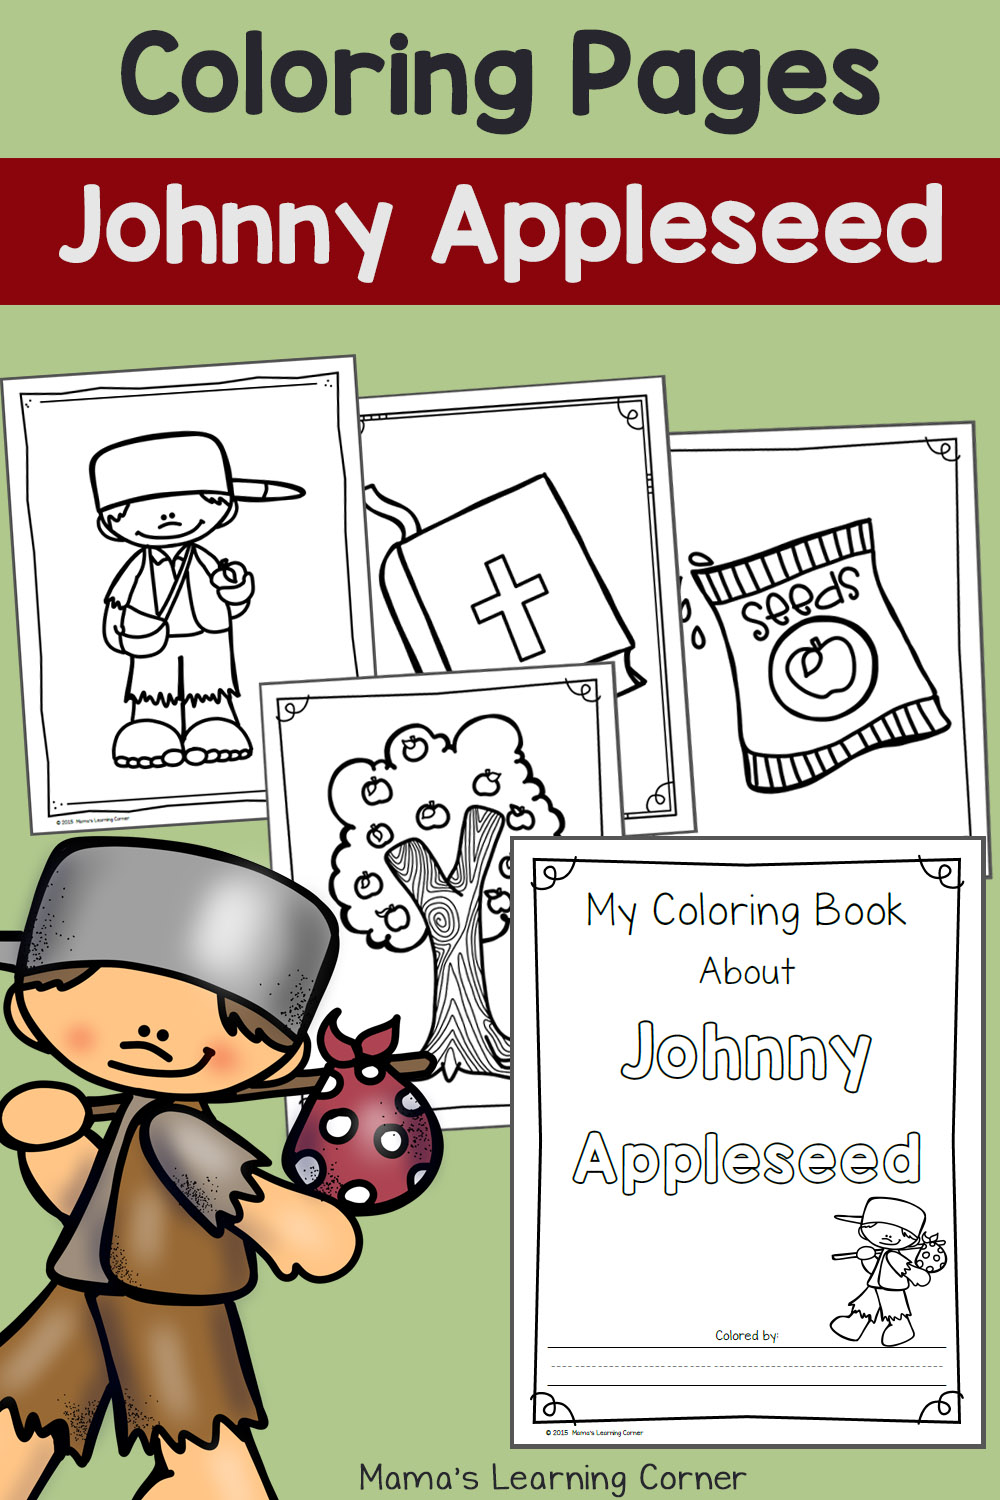 Johnny Appleseed Coloring Pages - Mamas Learning Corner